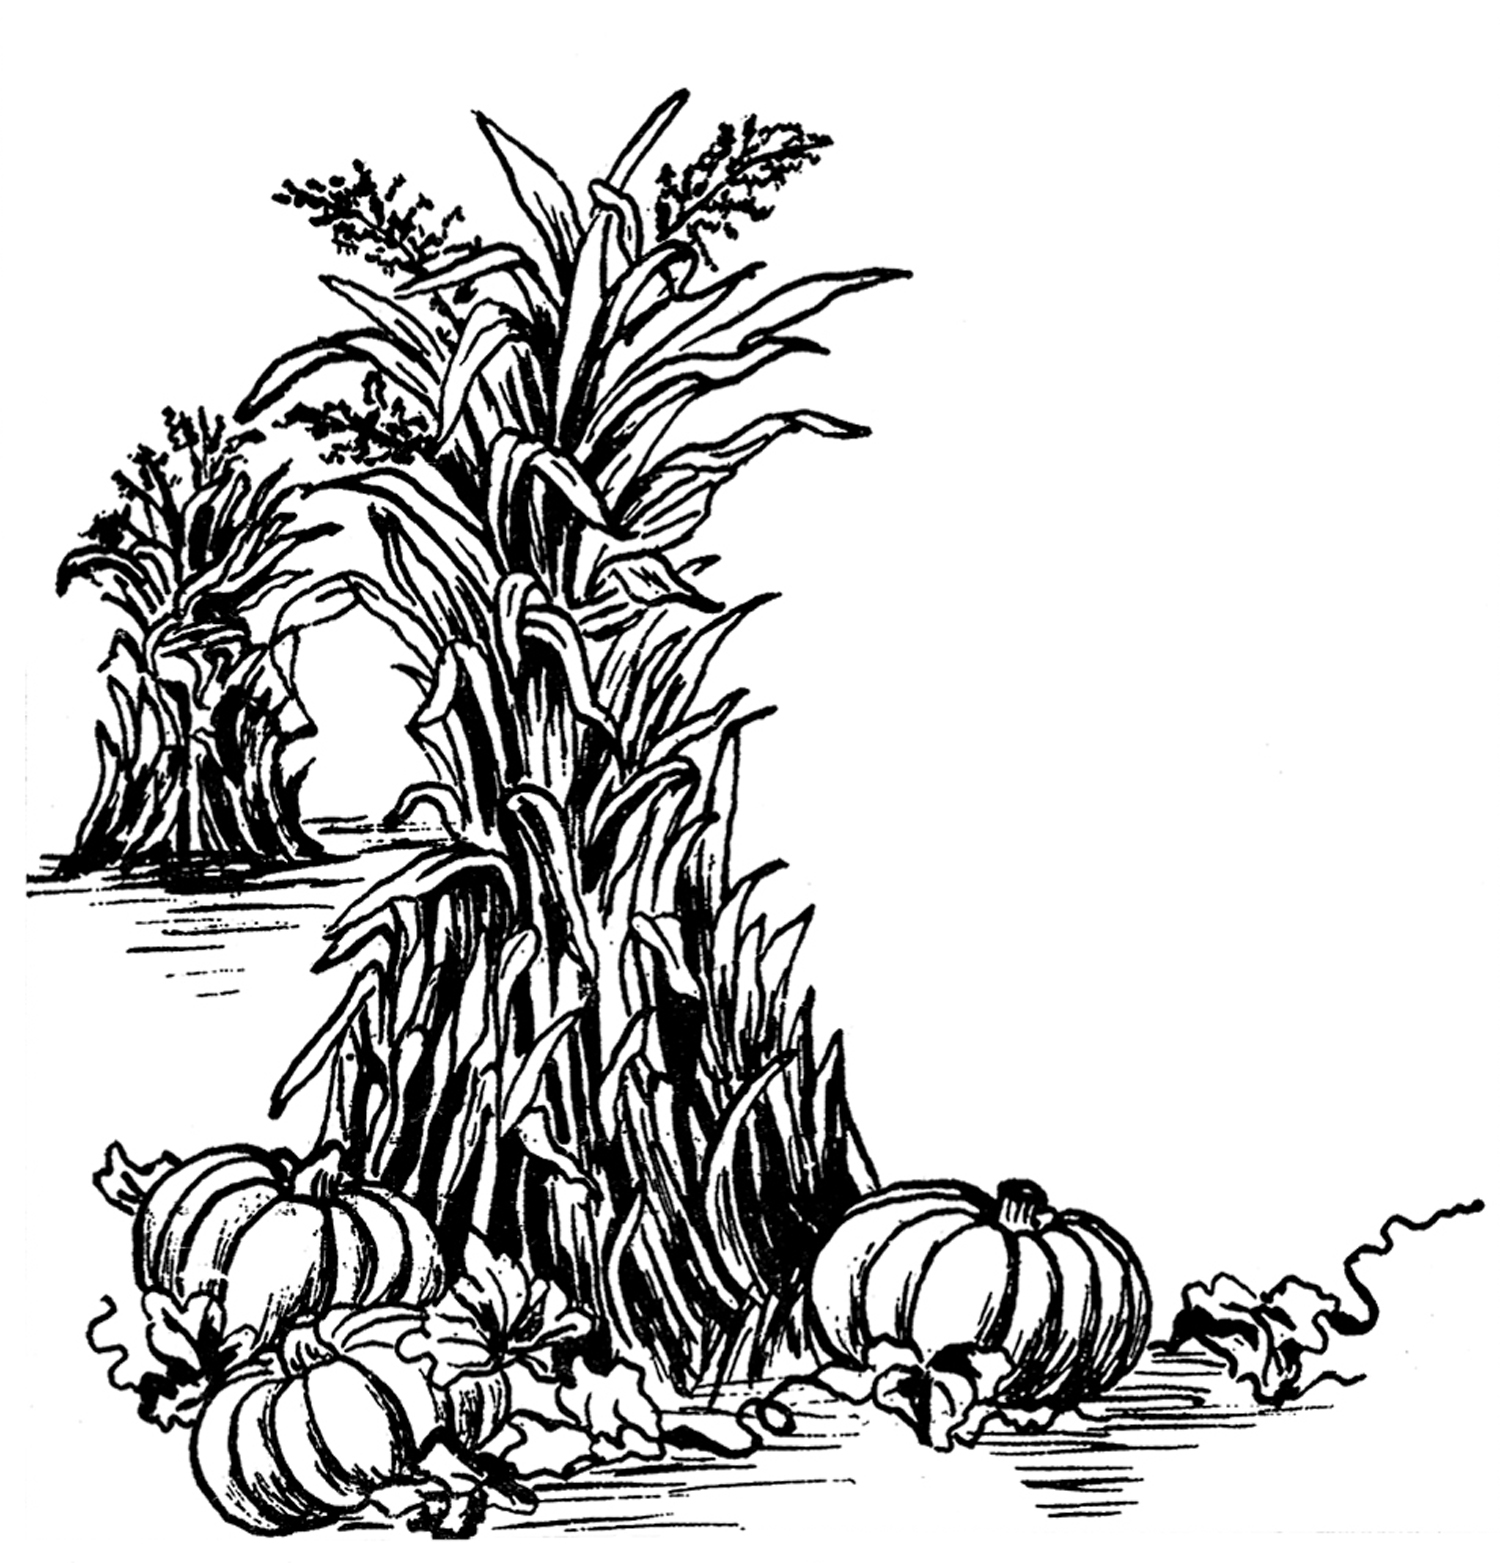 Harvest time border clipart black and white banner freeuse library Fall black and white fall harvest clip art black and white ... banner freeuse library